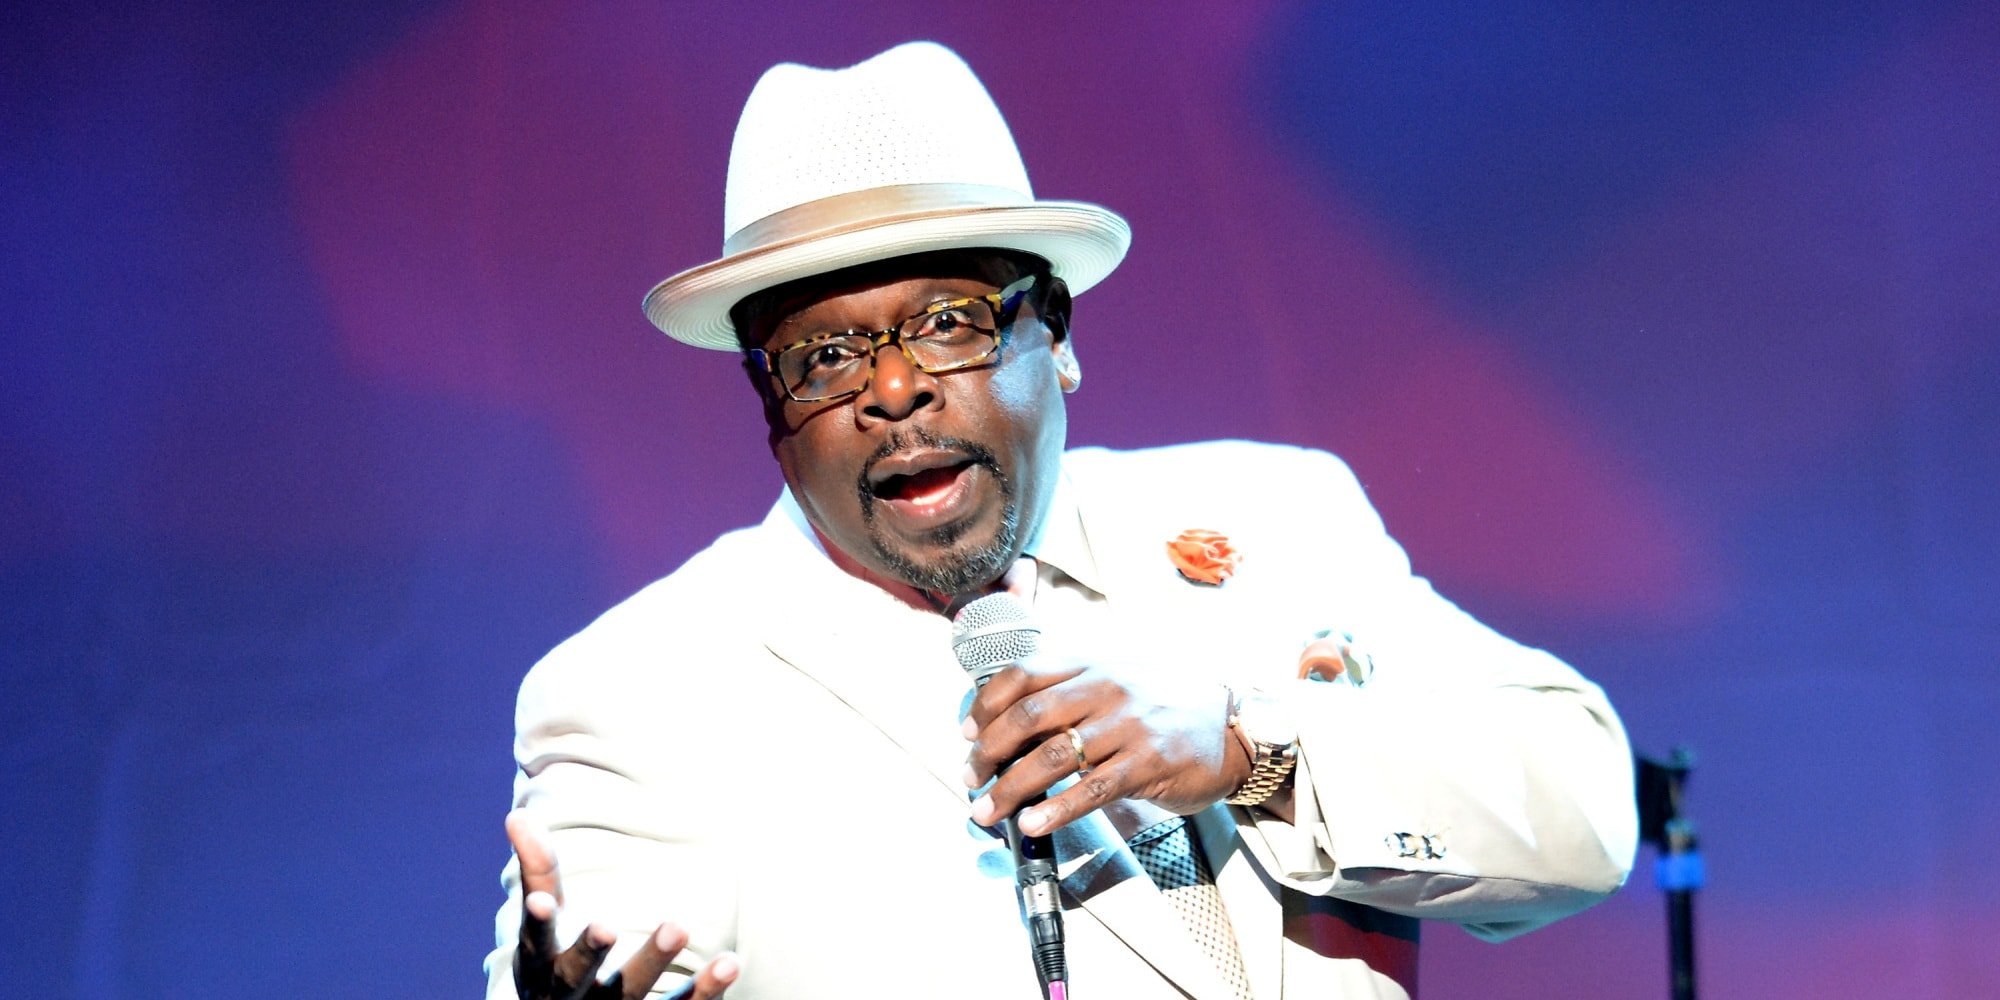 Cedric The Entertainer Full hd wallpapers